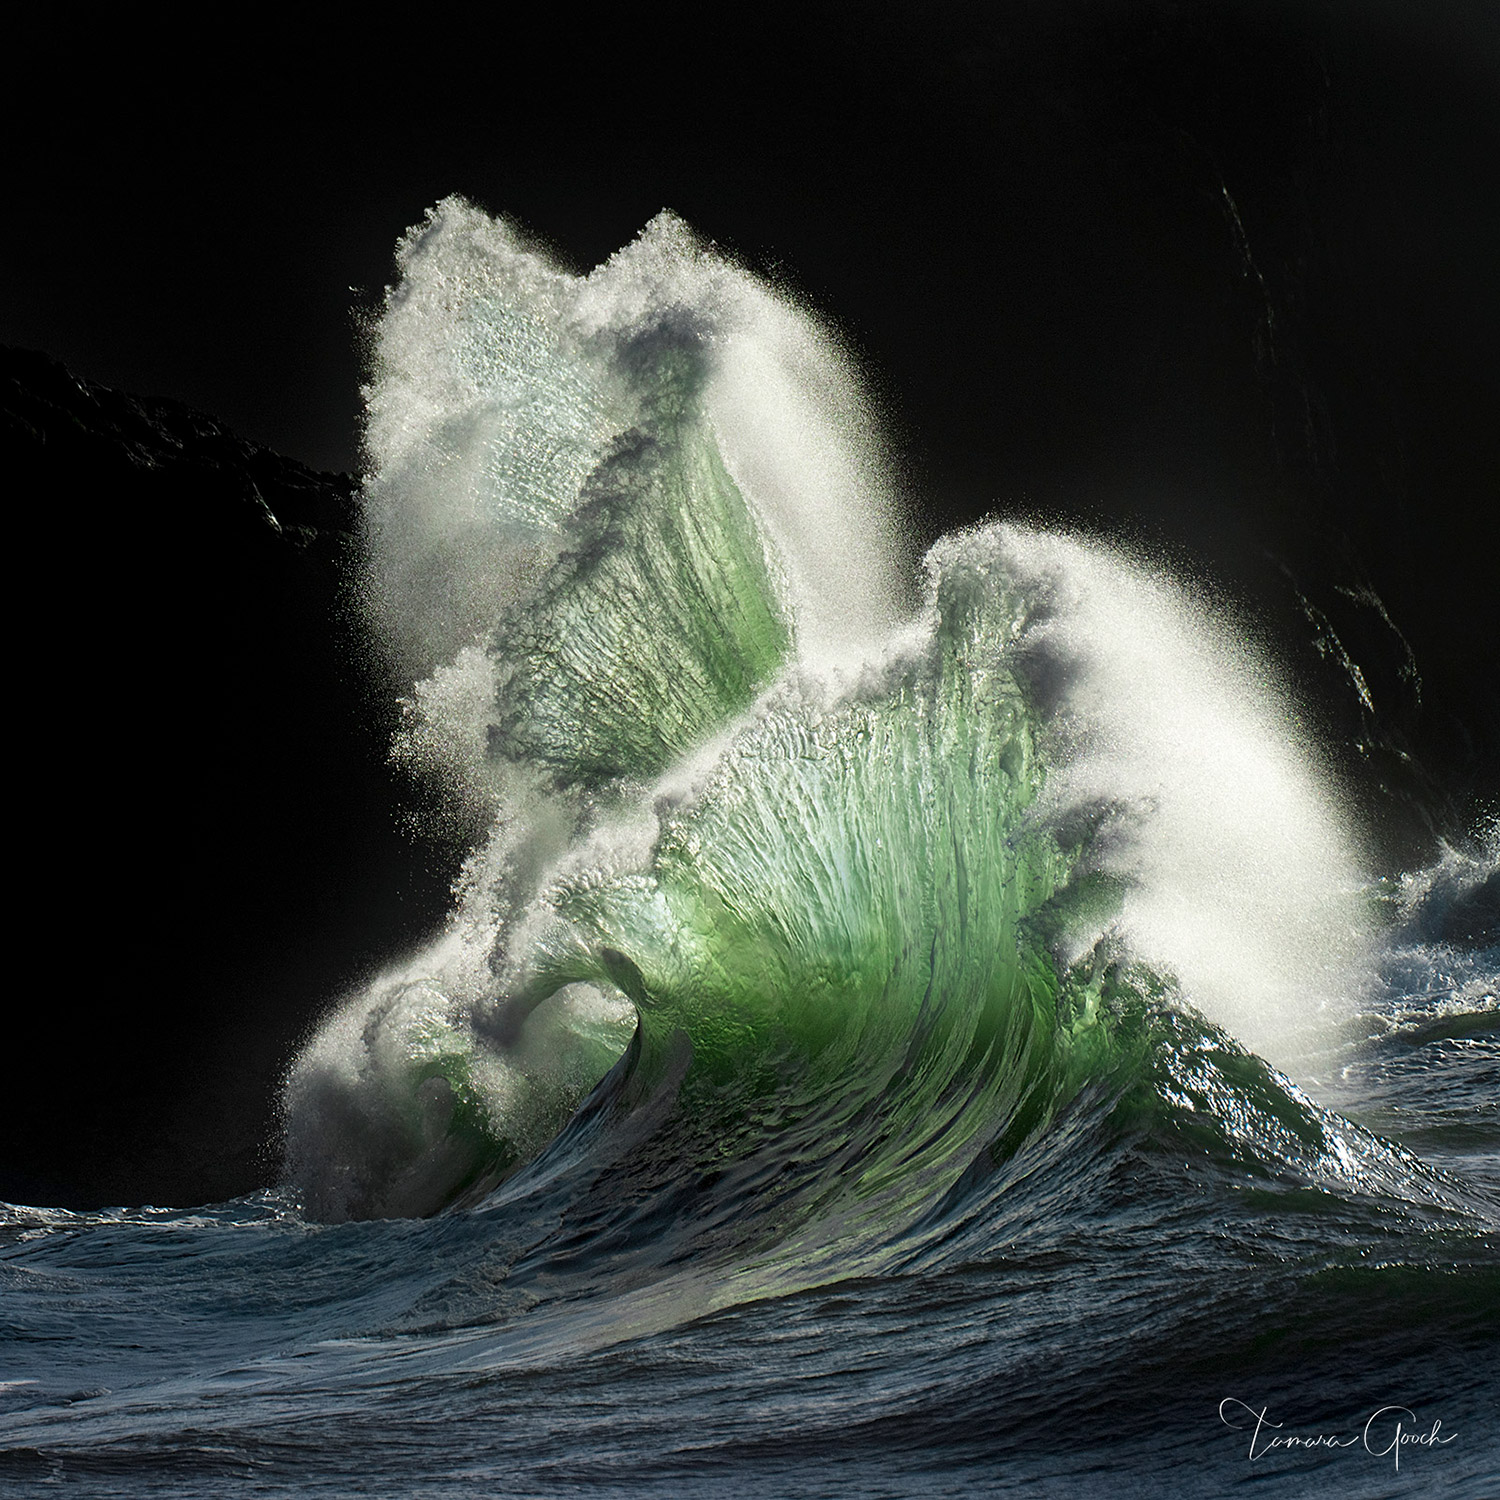 Fine art limited edition photograph of Fan Waves in the ocean shown printed on Chromalux museum quality metal for a superior presentation.